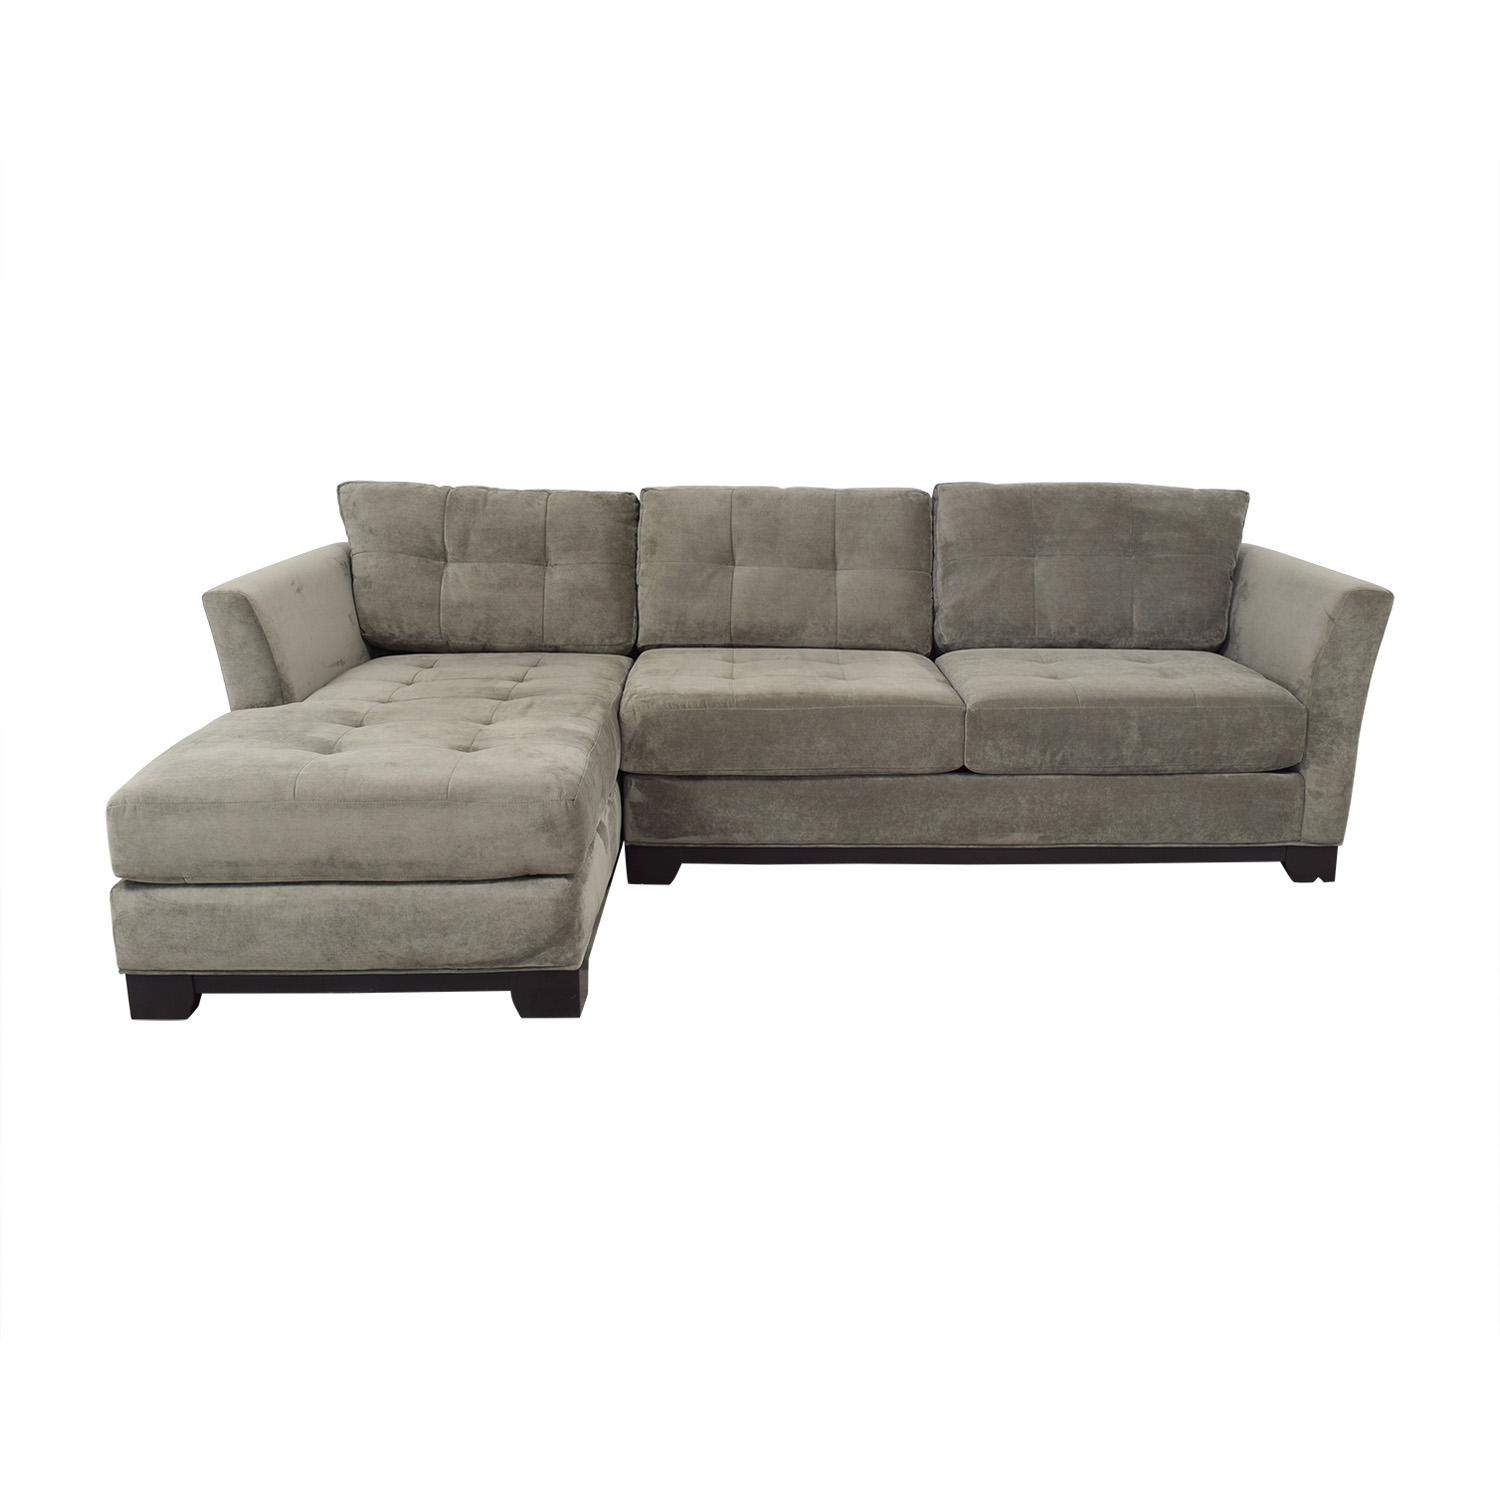 Macy's Macy's Jonathan Louis Elliot Chaise Sectional Sofa price